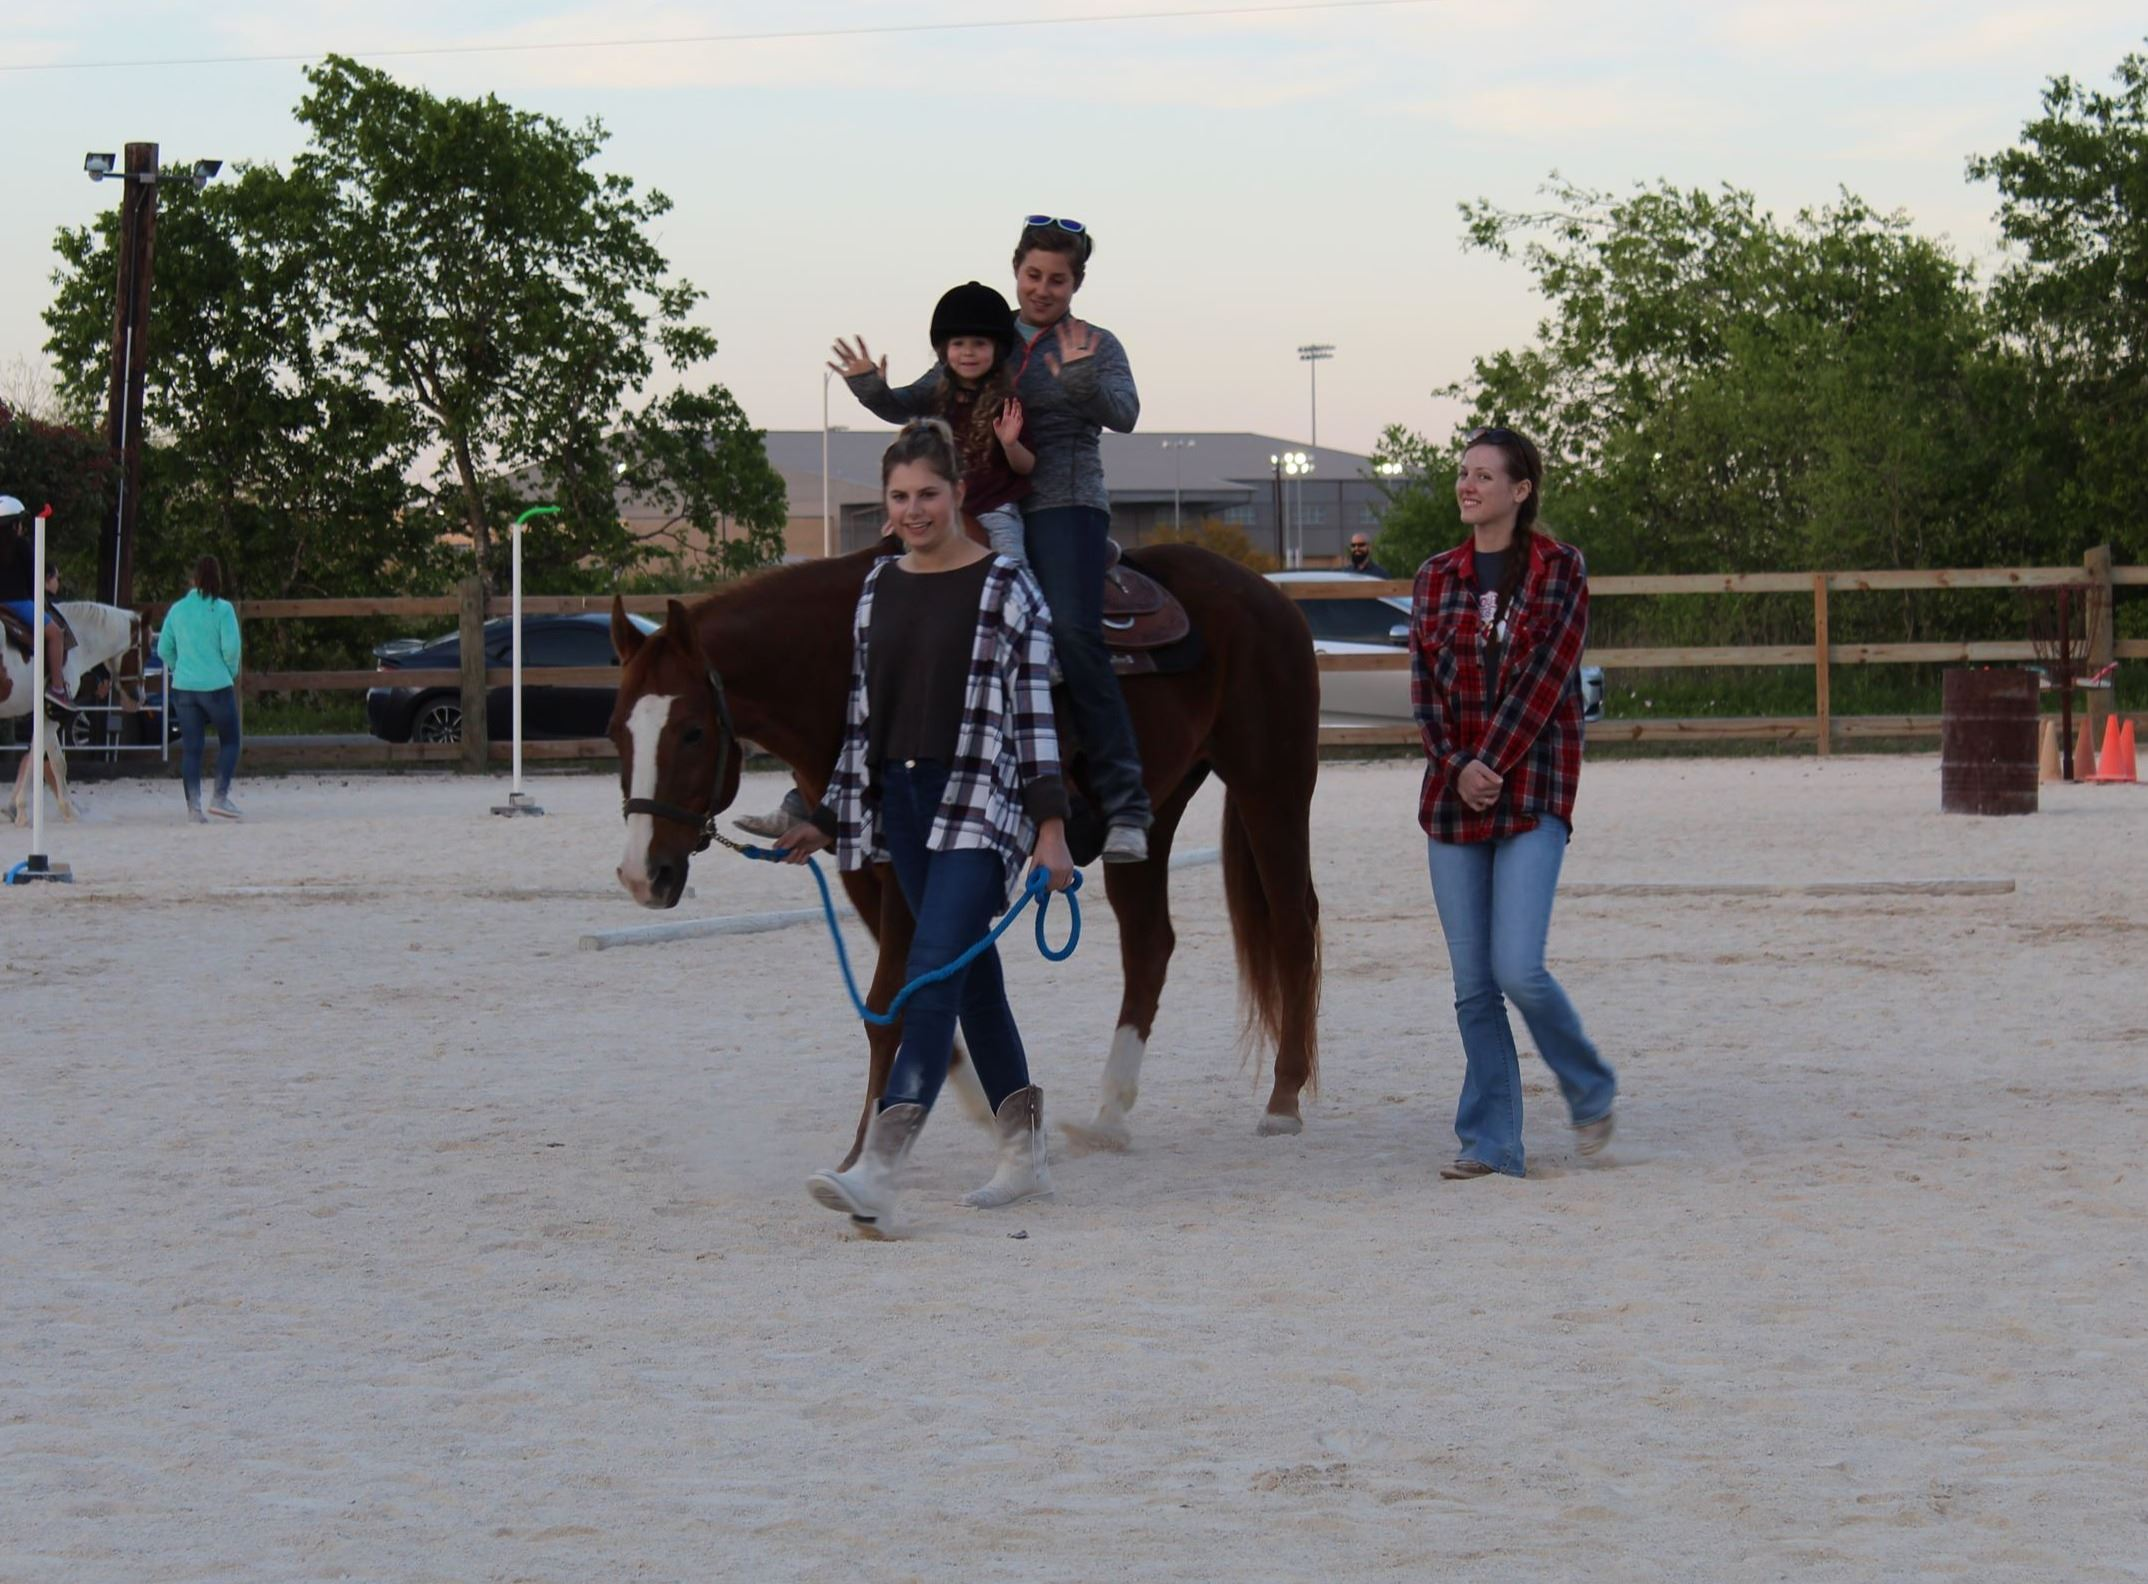 Photo of child on horse with two adults helping the horse to walk slowly in a fenced area